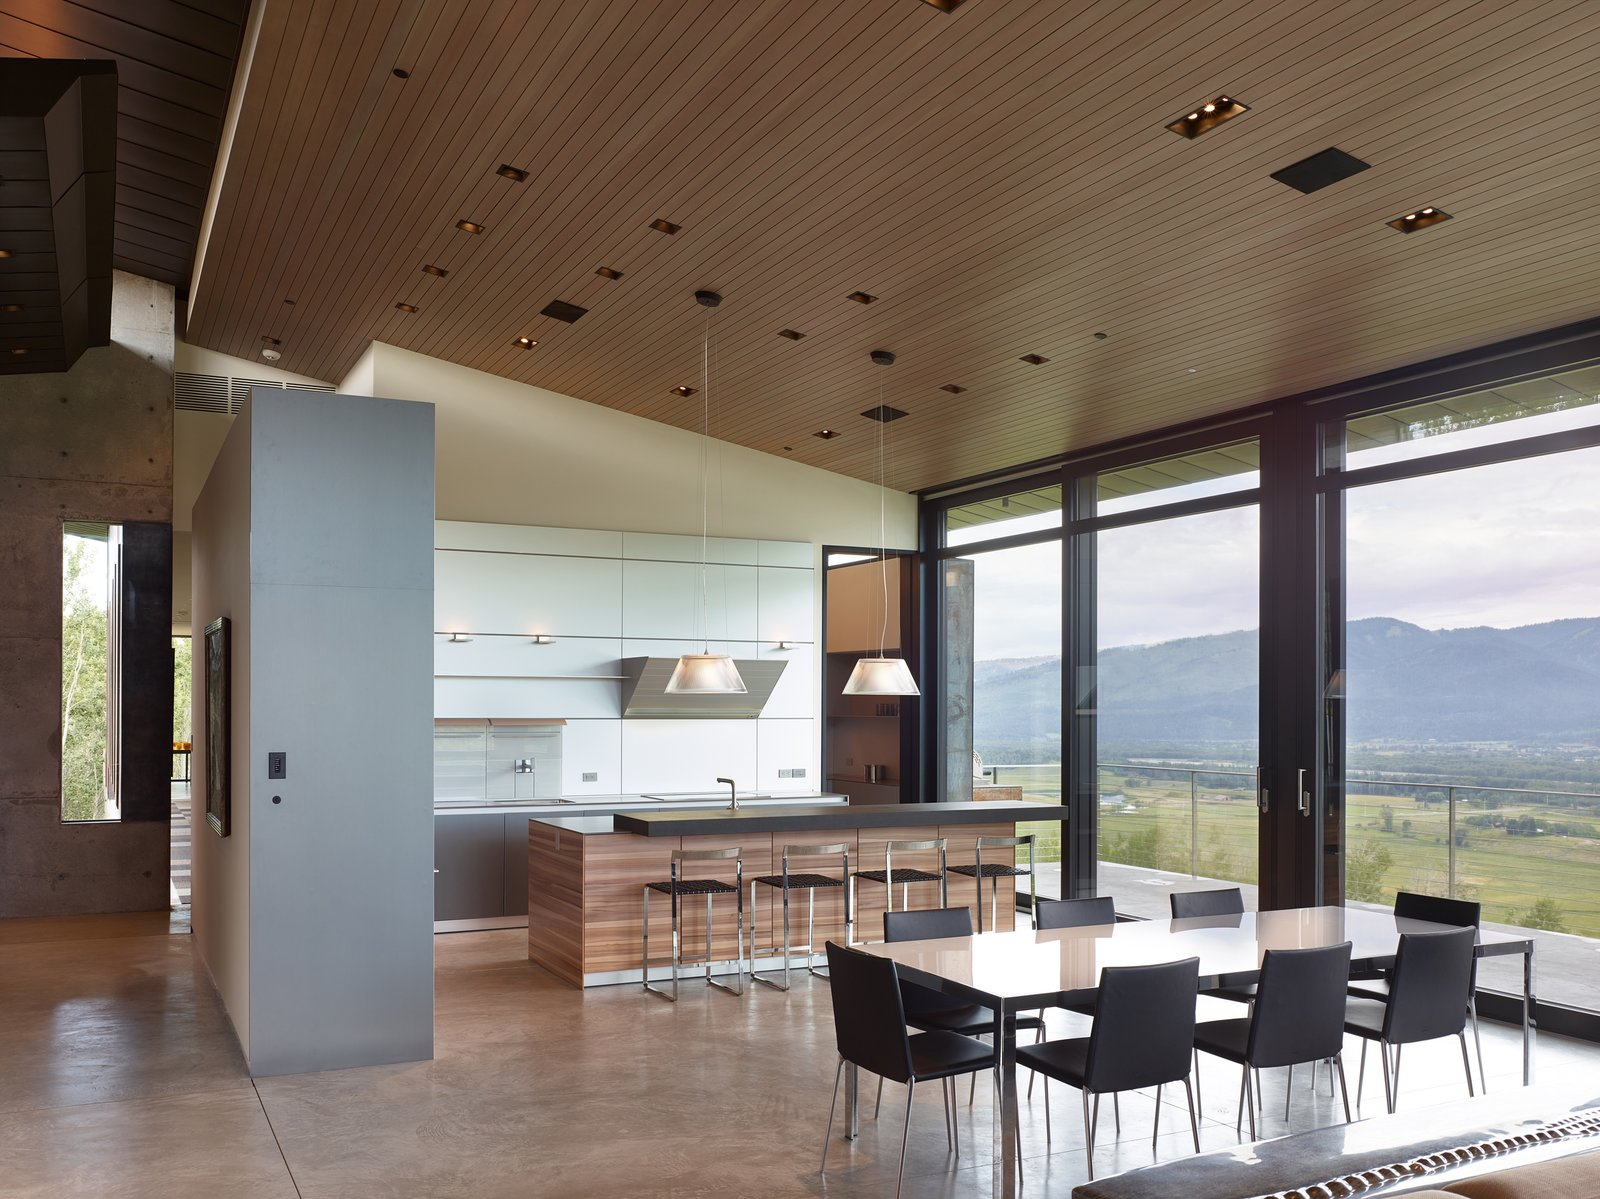 Kitchen, White Cabinet, Wood Cabinet, Concrete Floor, Pendant Lighting, and Recessed Lighting The dining area sits between the open concept kitchen and living room.   Wyoming Residence by Abramson Teiger Architects